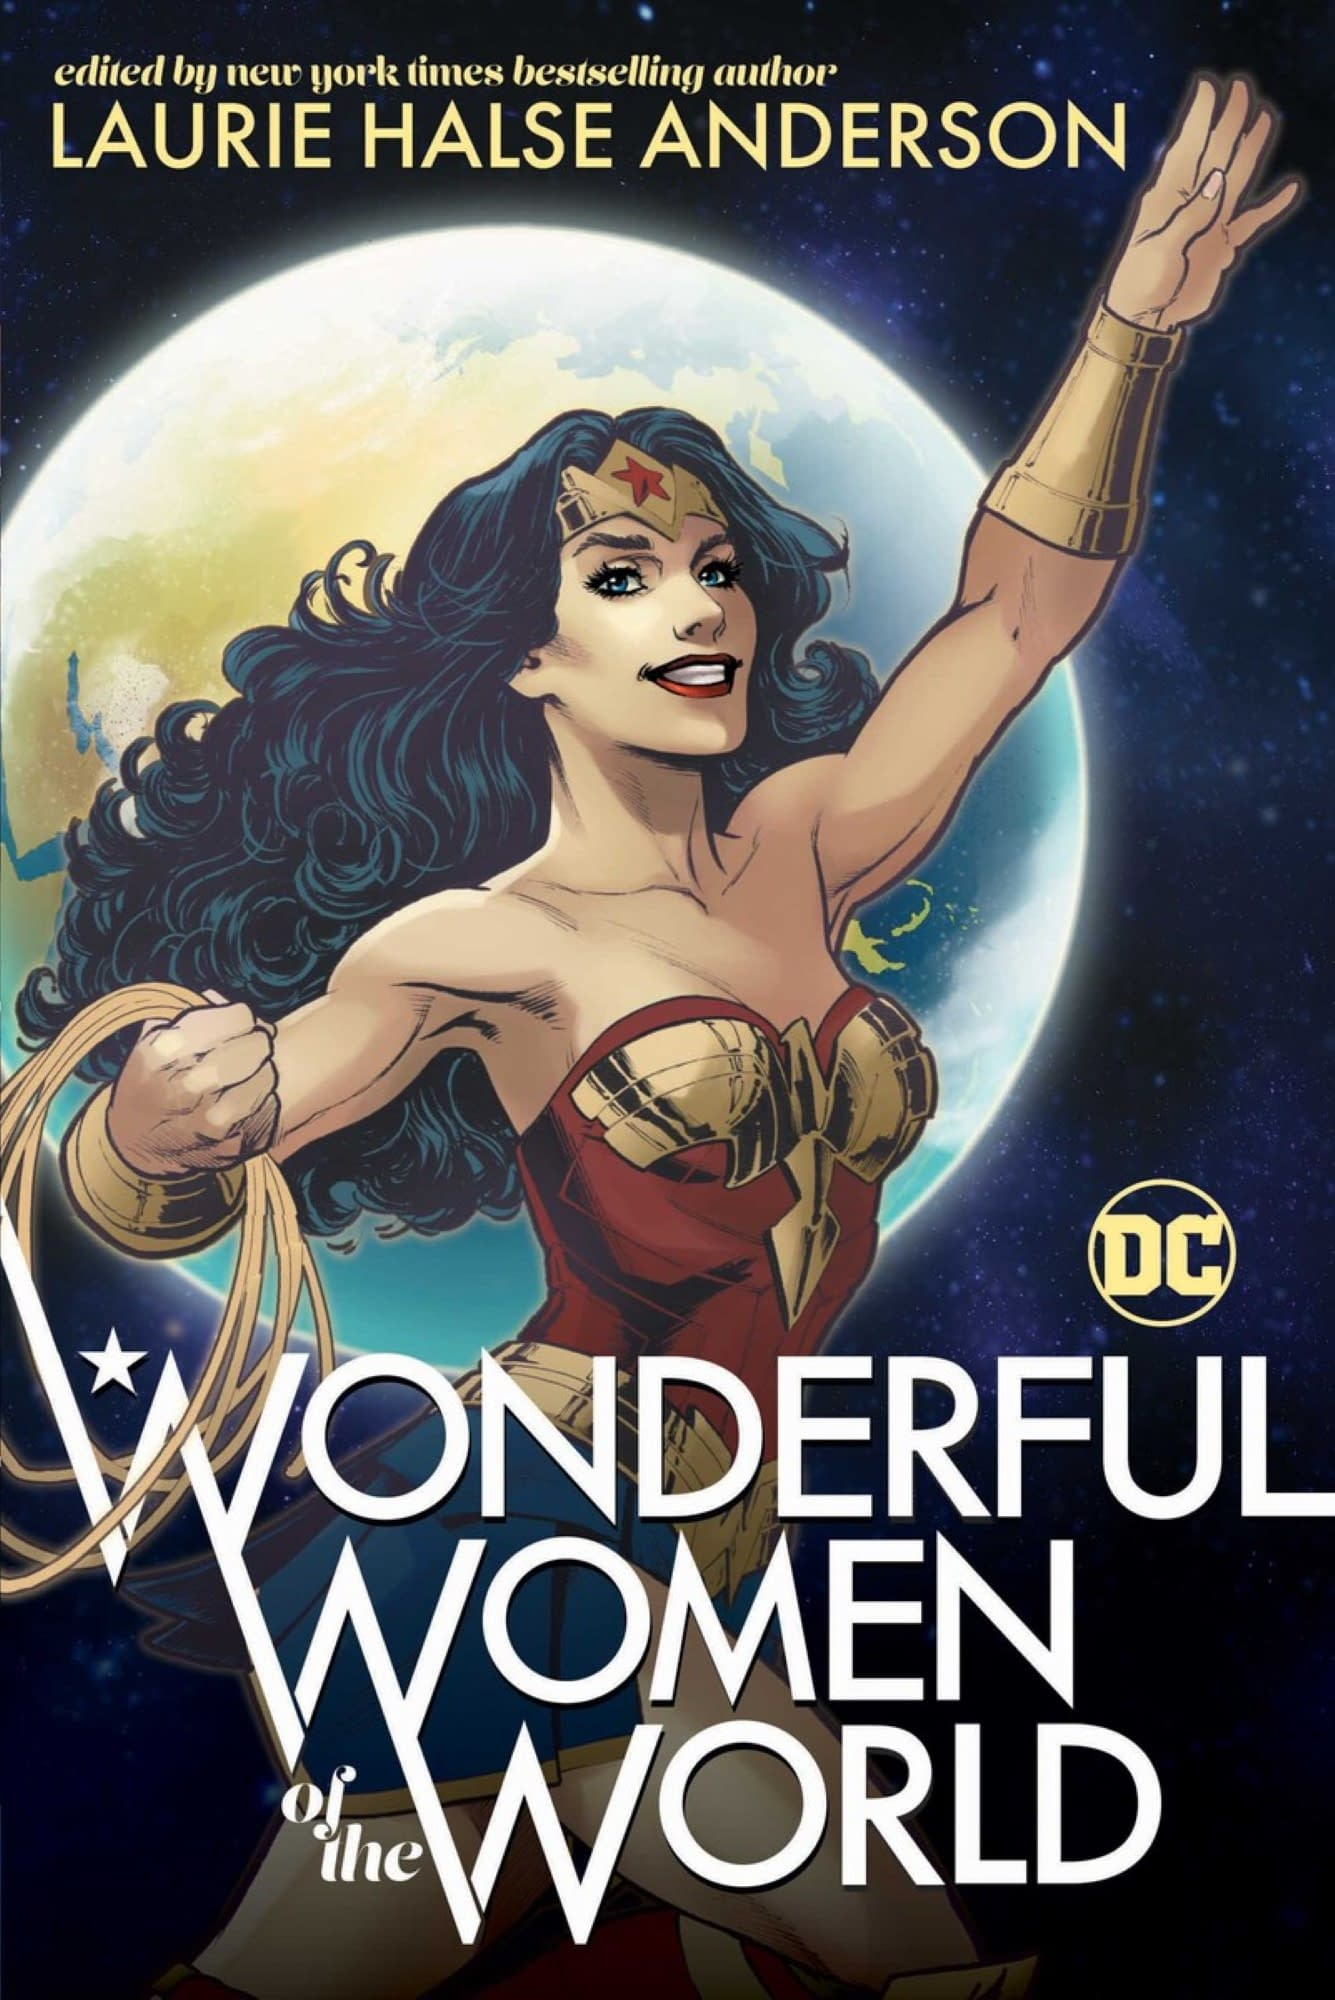 DC Publishes 12 Wonder Woman Comics In October For 80th Anniversary